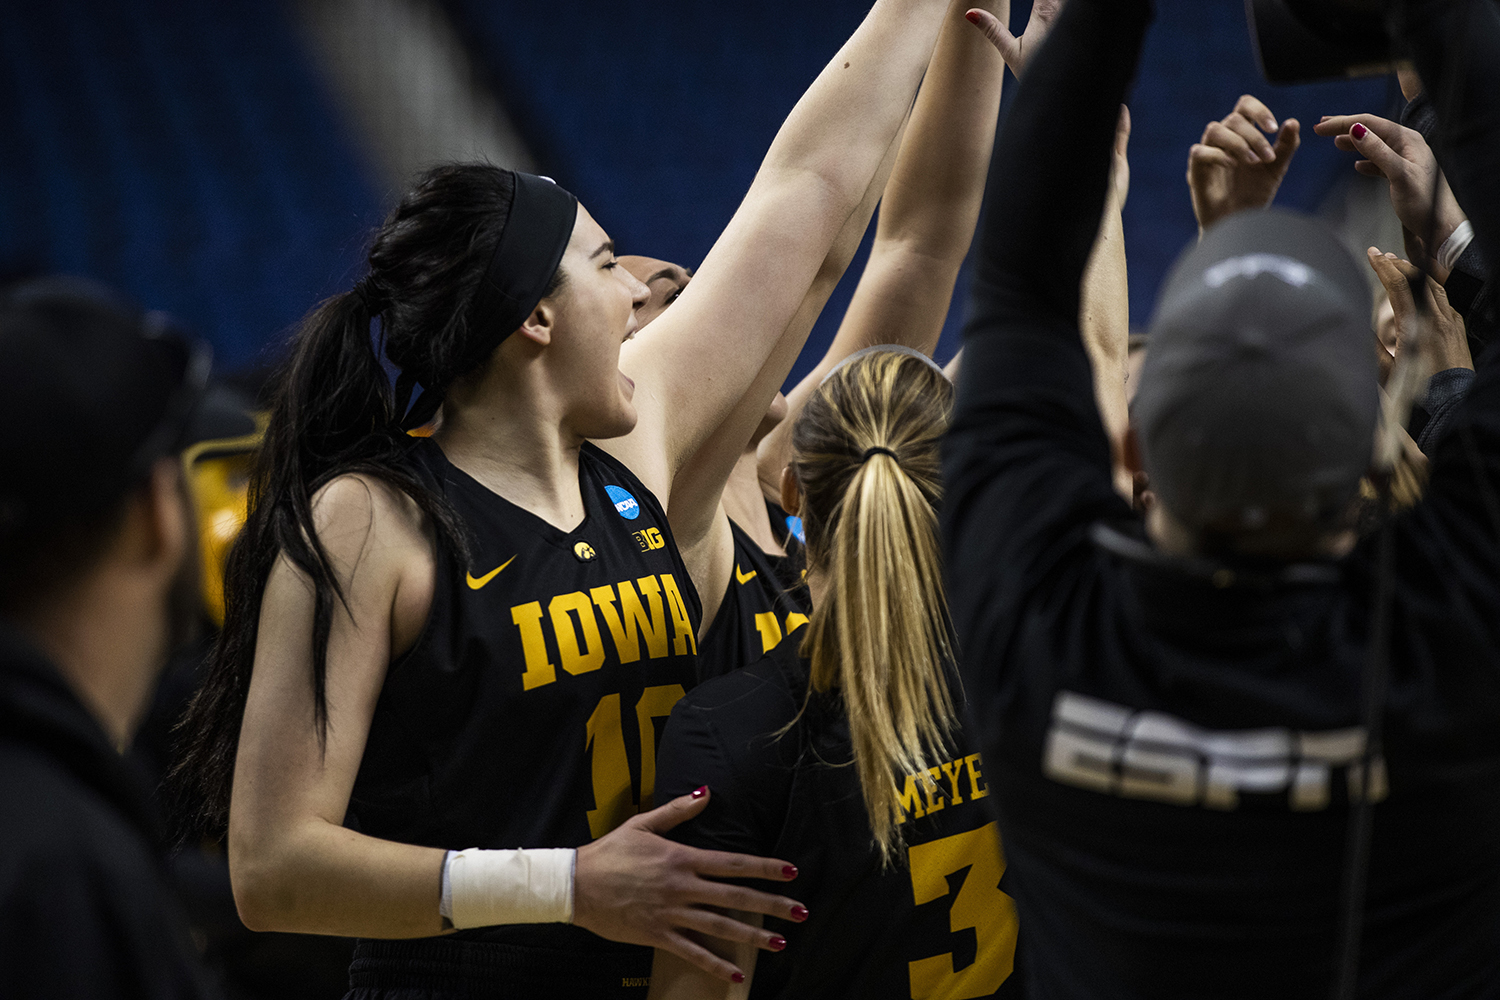 Iowa+players+meet+before+the+NCAA+Elite+8+game+against+Baylor+at+the+Greensboro+Coliseum+Complex+on+Monday%2C+April+1%2C+2019.+The+Bears+defeated+the+Hawkeyes+85-53.